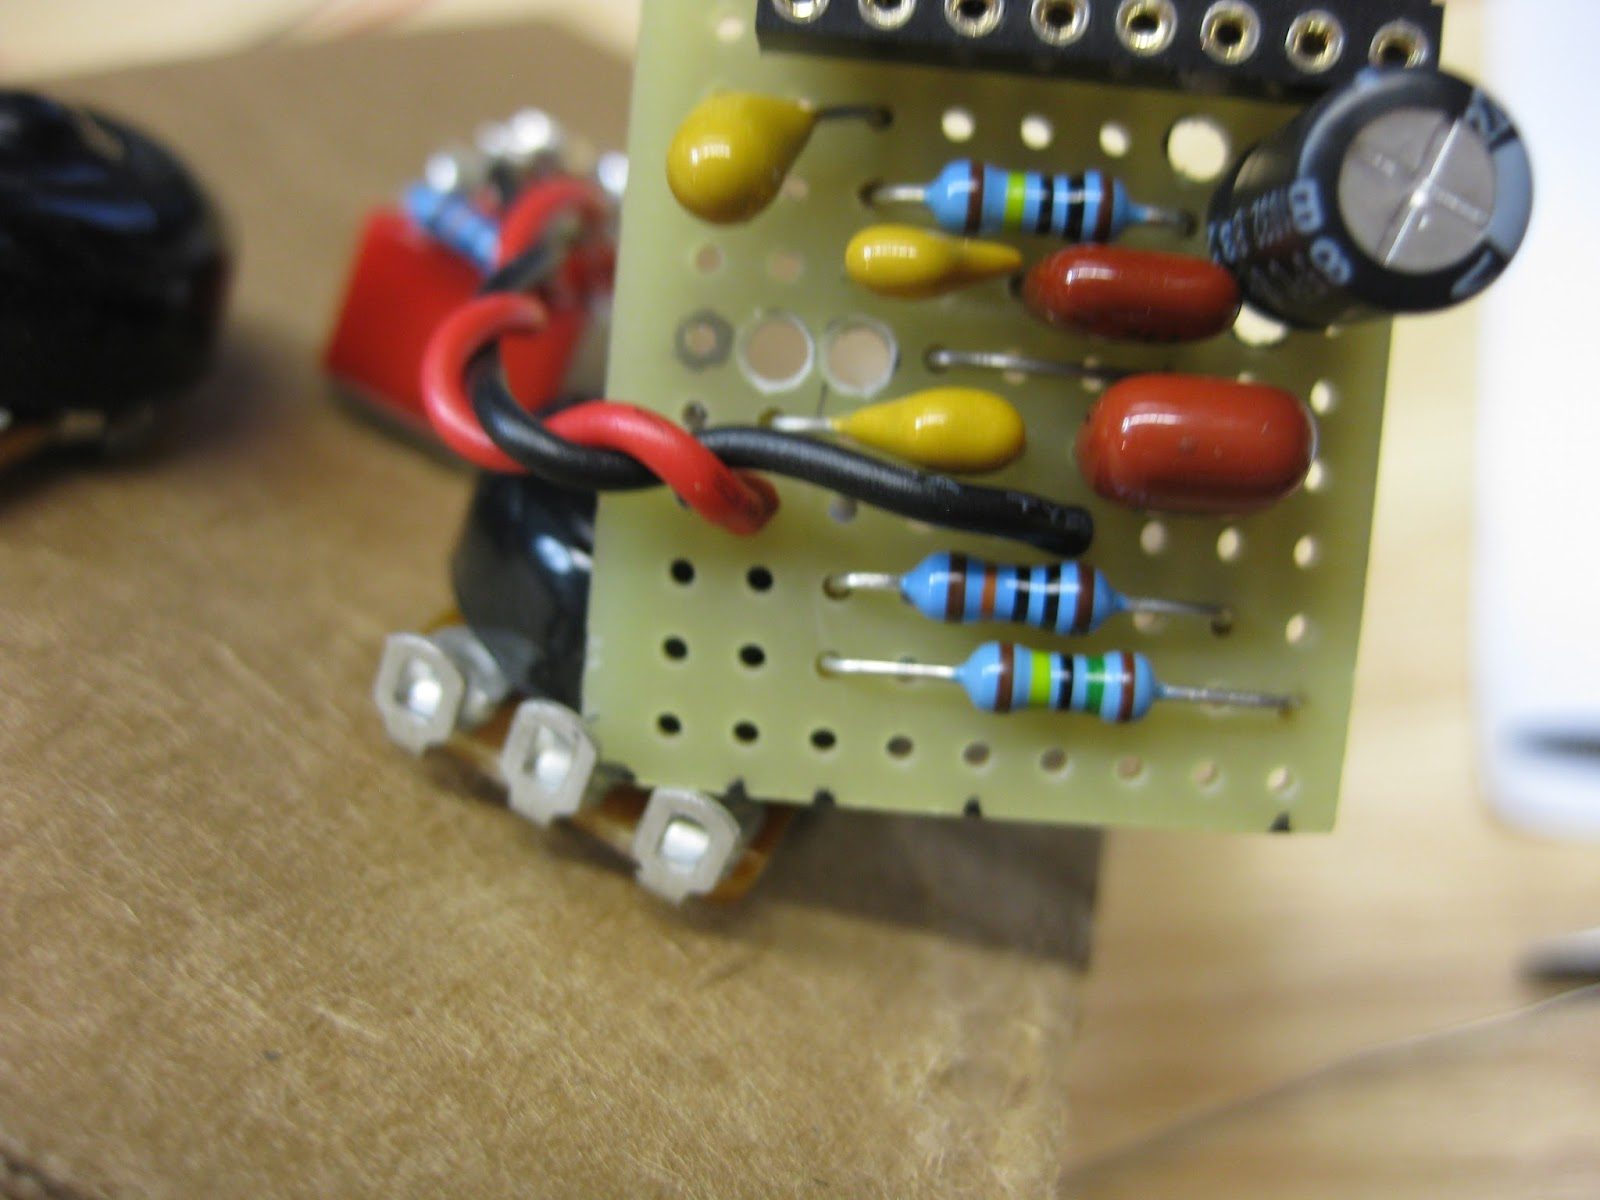 DIY Guitar pedal projects: Red Llama with mods is being soldered